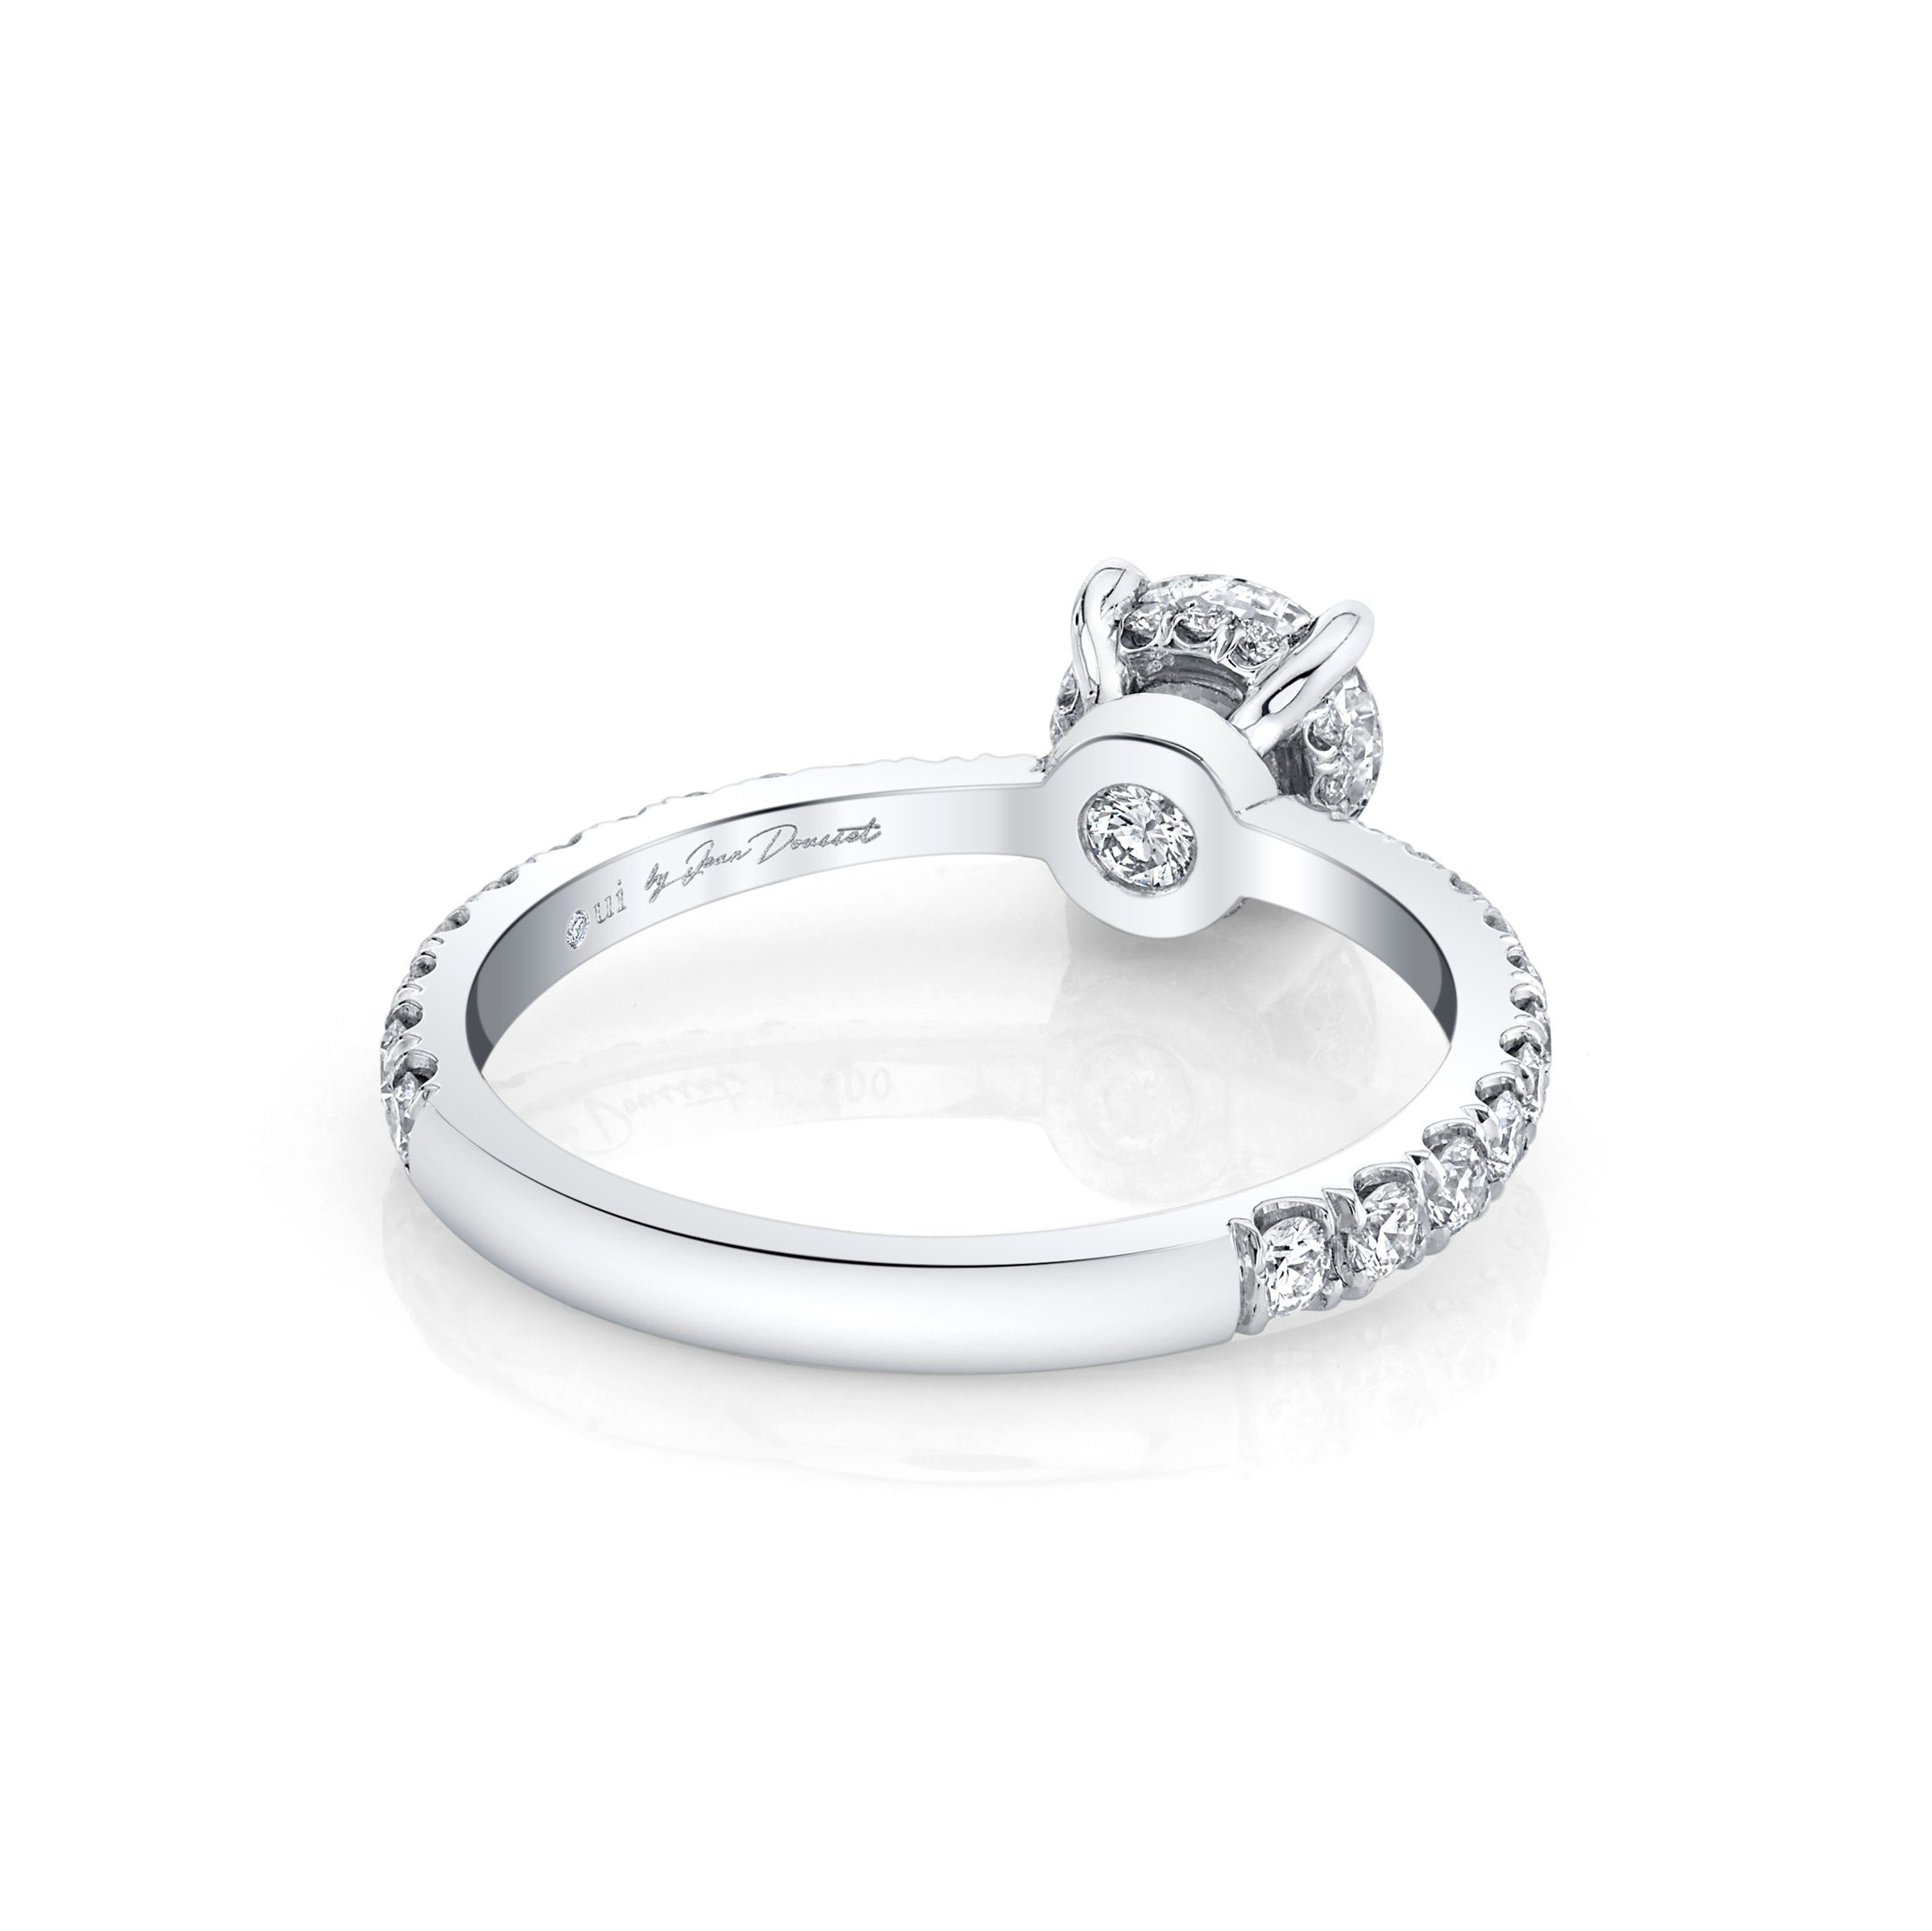 Eloise Round Brilliant Solitaire Engagement Ring with a diamond pavé band in 18k White Gold Back View by Oui by Jean Dousset